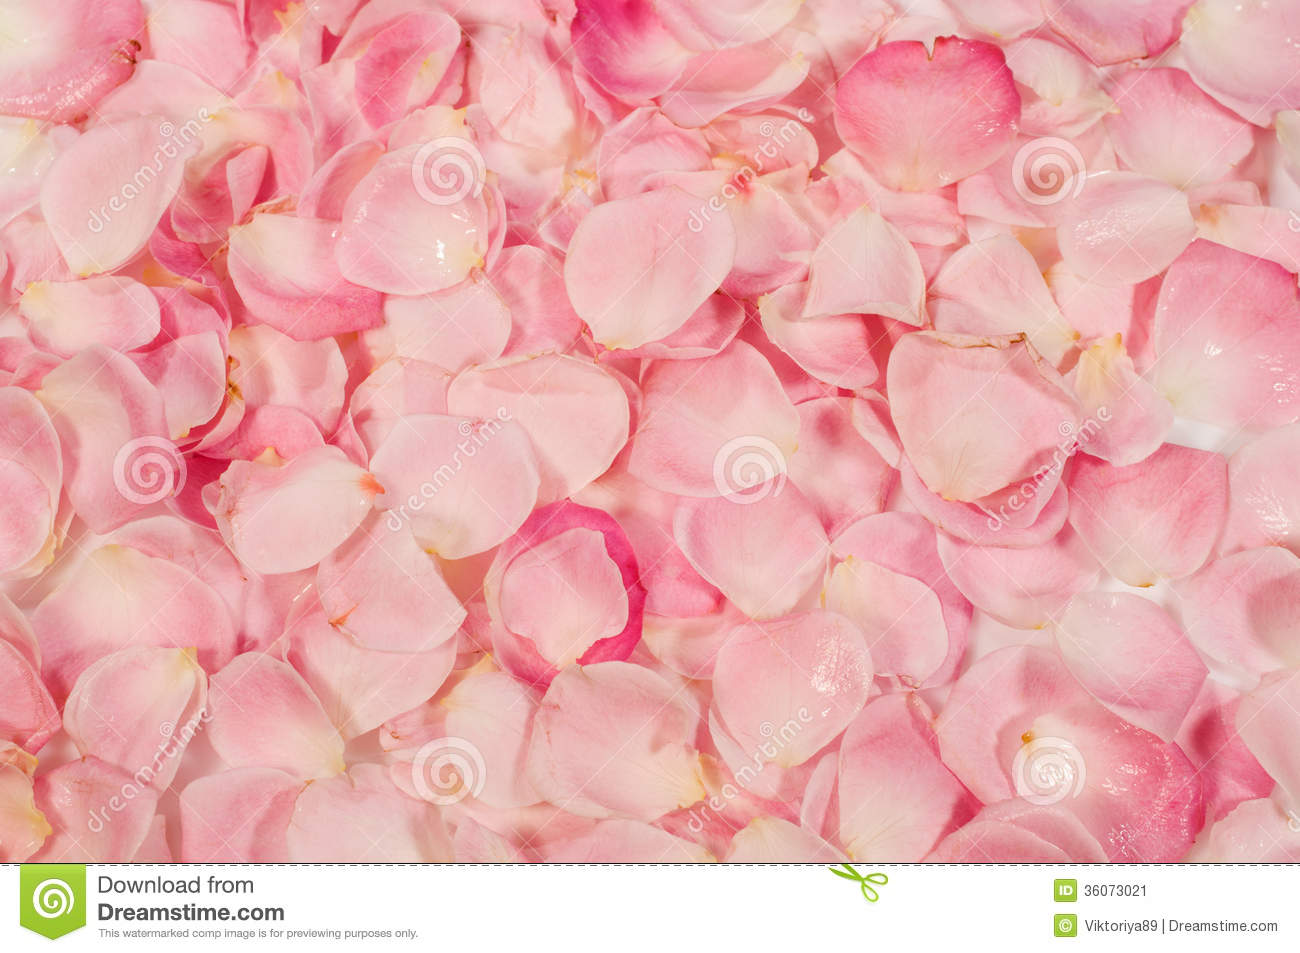 Background Of Rose Petals Stock Image  36073021